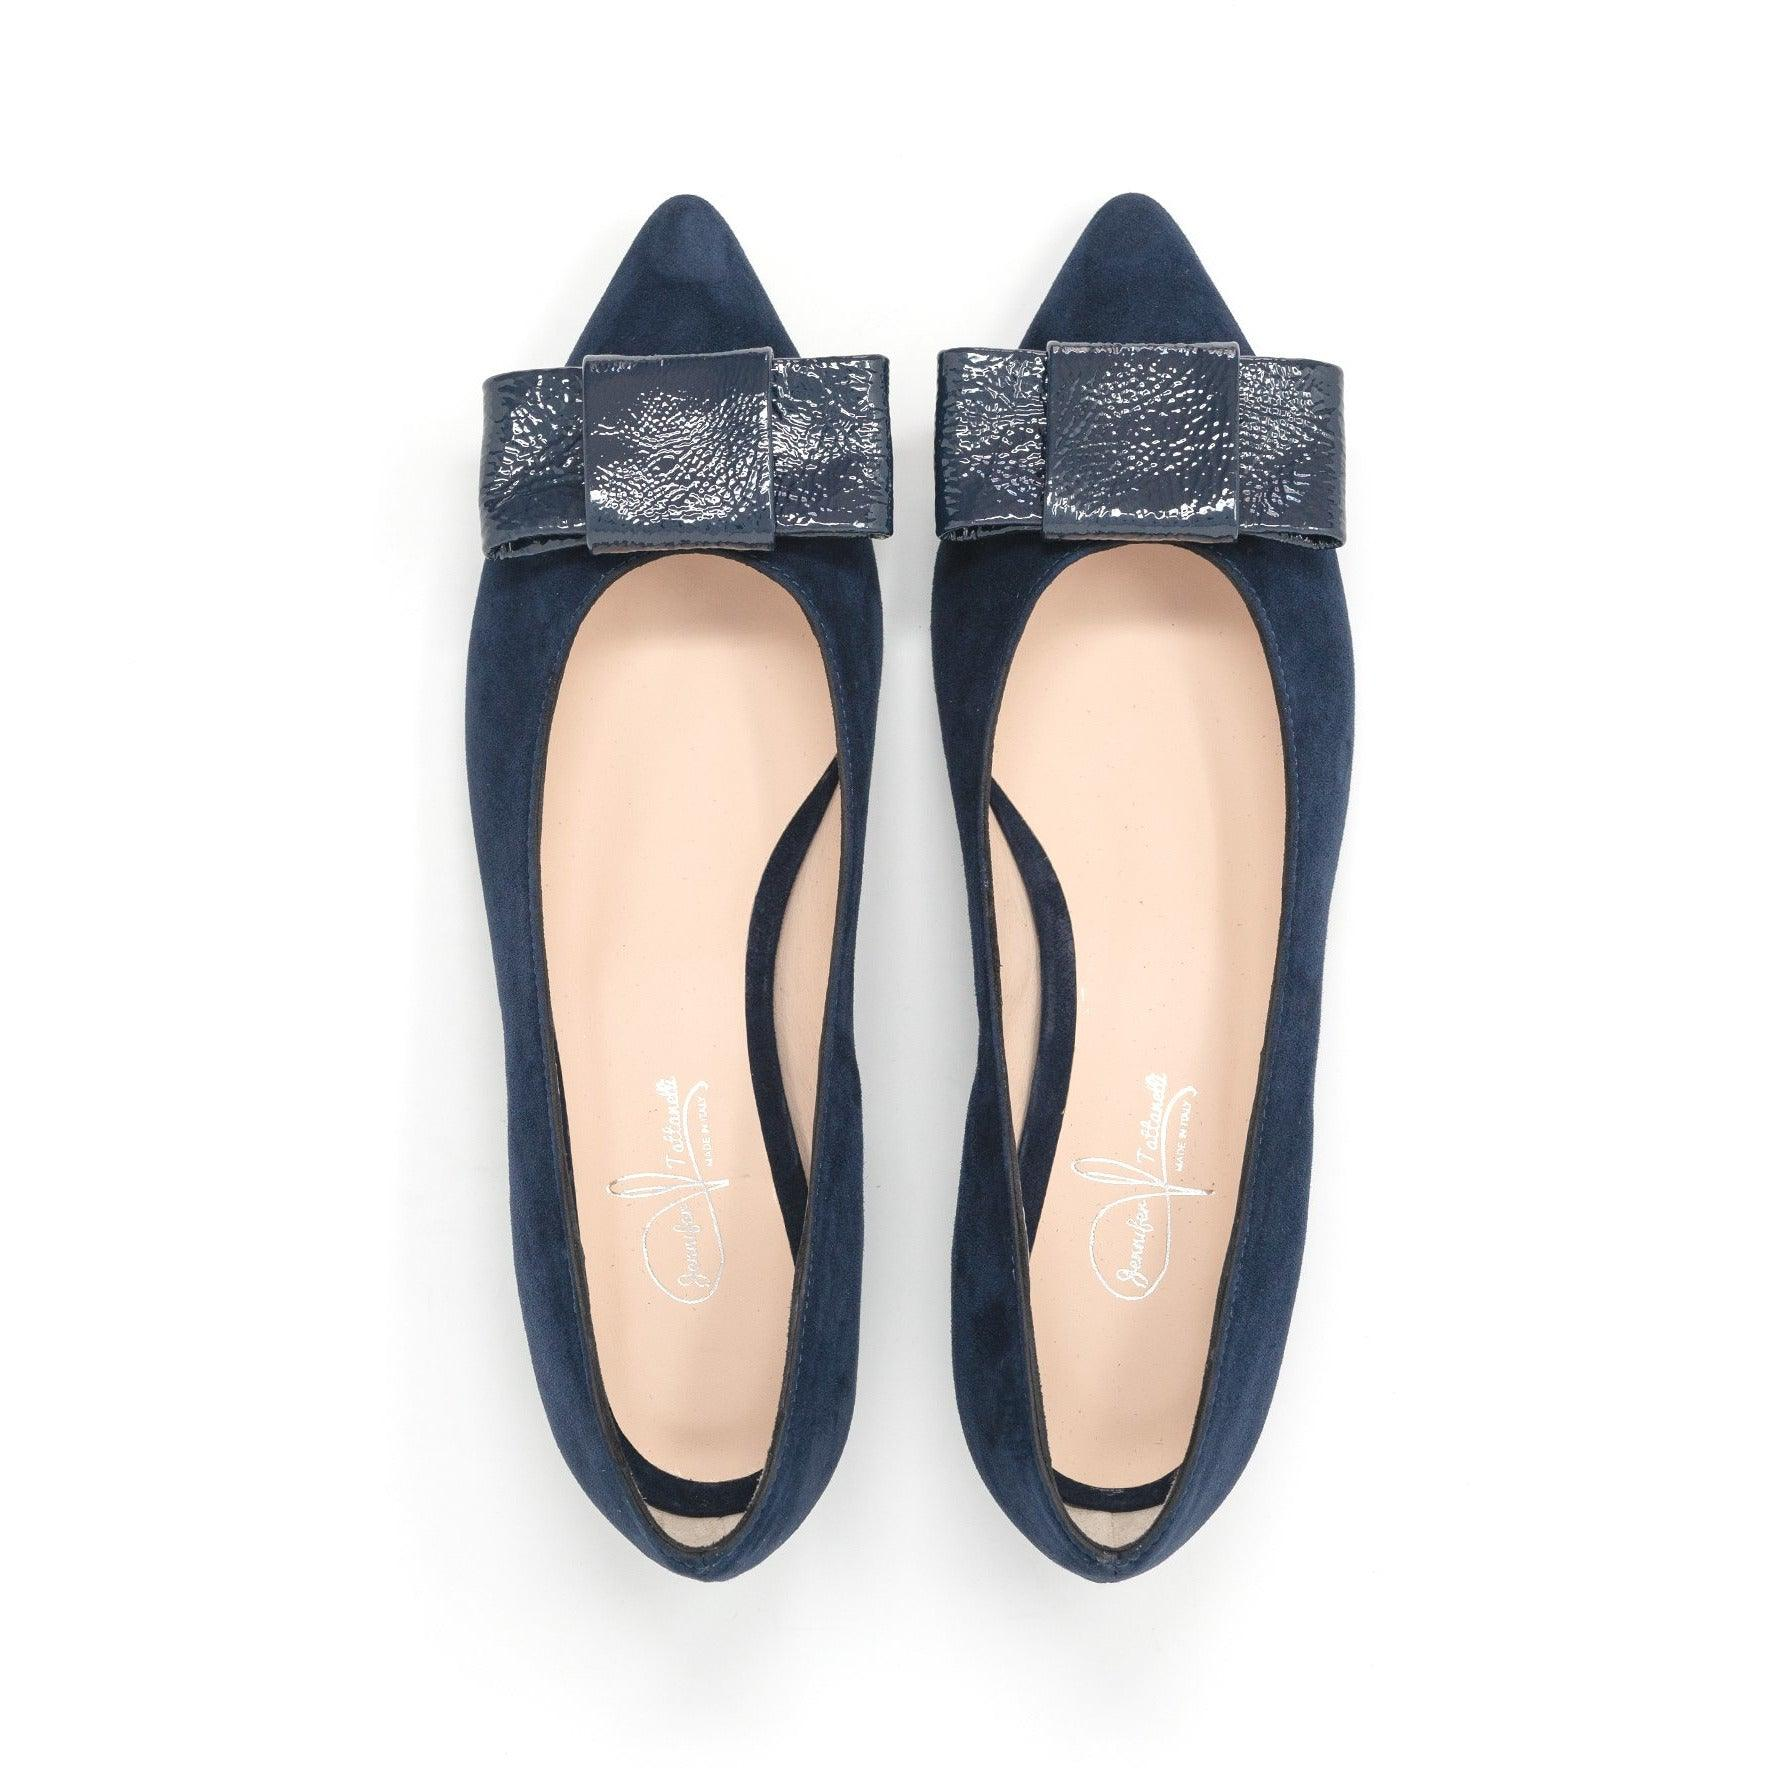 MIL6044 T10 Women Flats - New Fall Winter 2019-2020 Collection